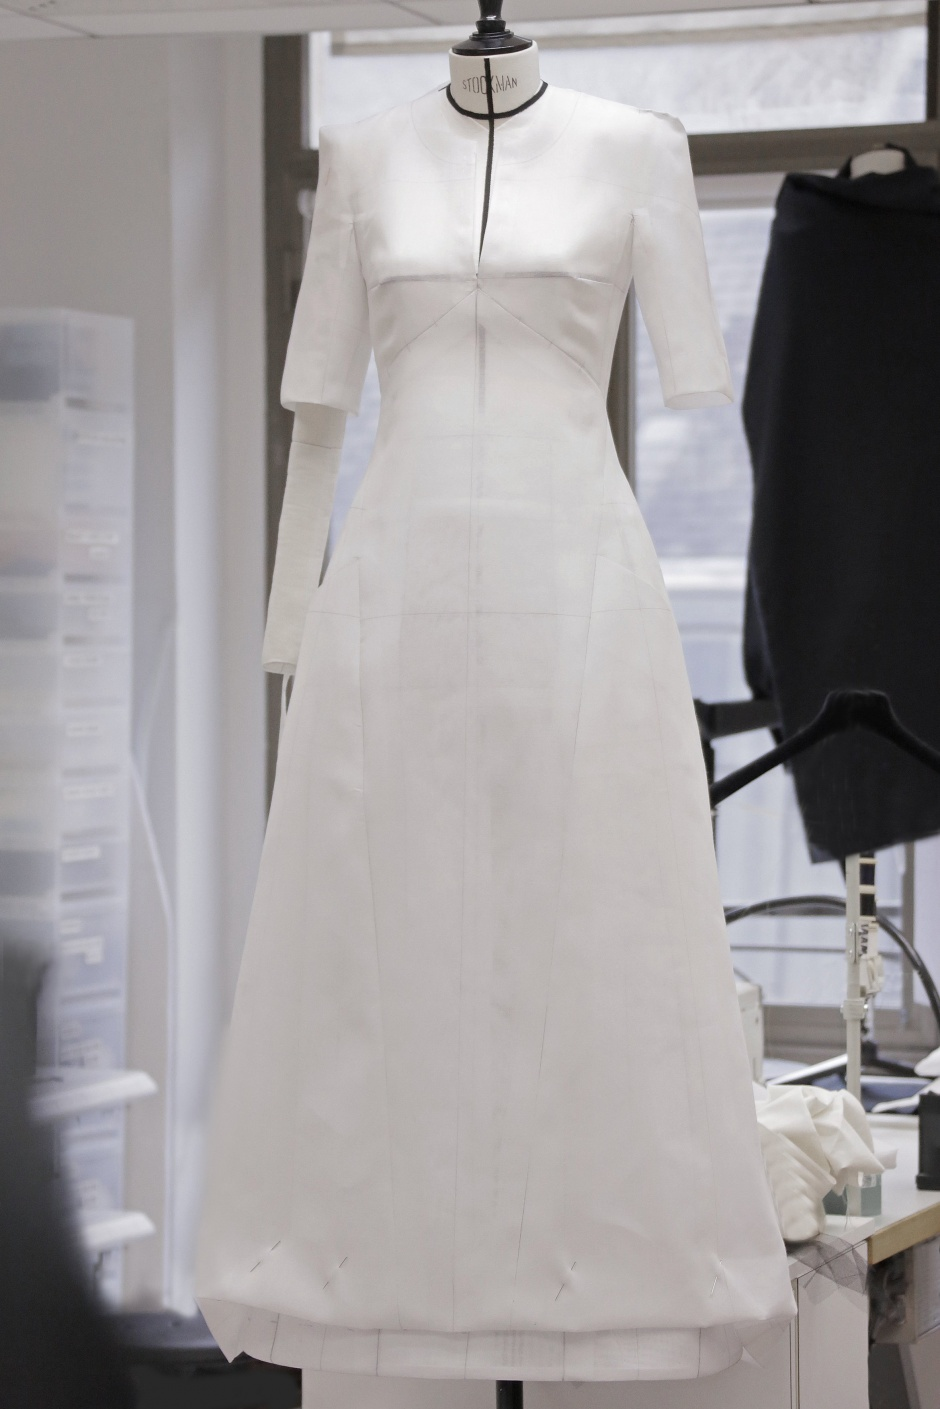 Making of Chanel Couture Dress